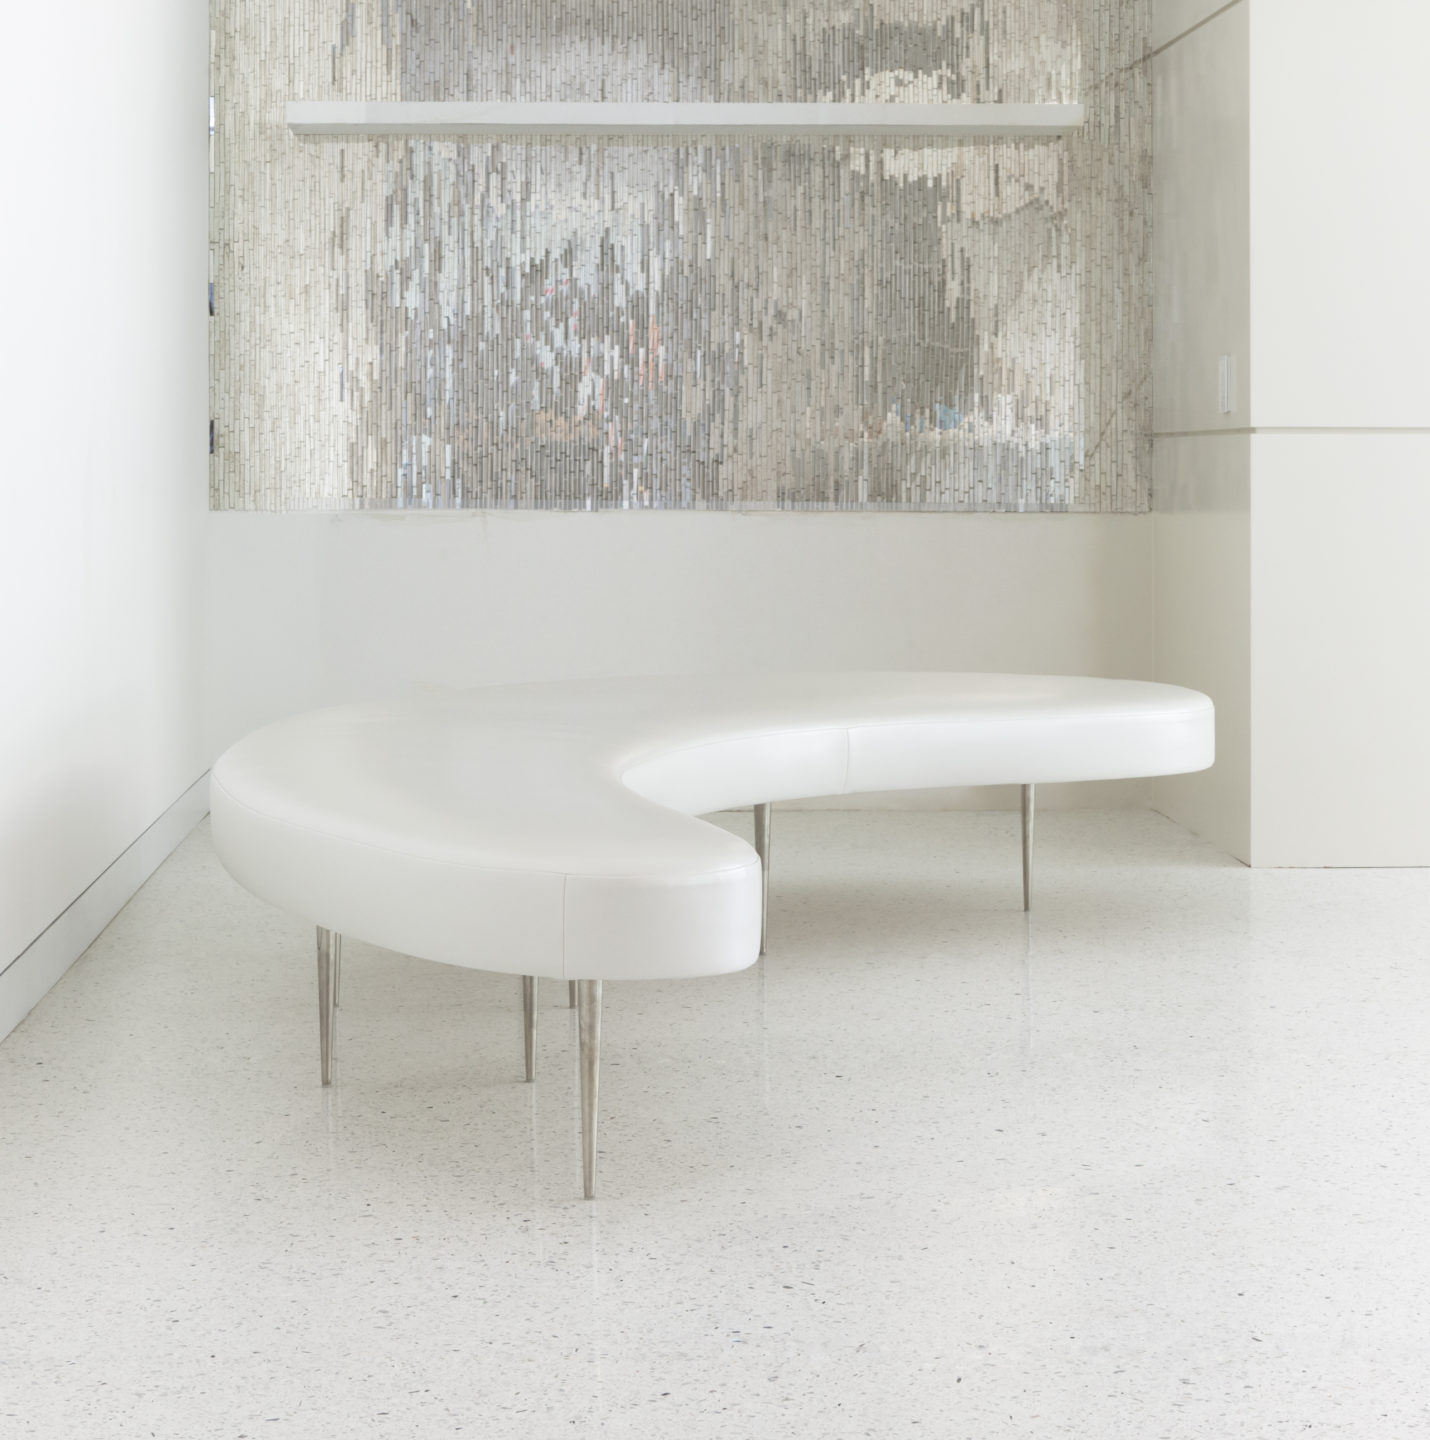 Studio_William_Hefner_products_Lune_bench_Donze__Curved_Bench_01-Edit copy